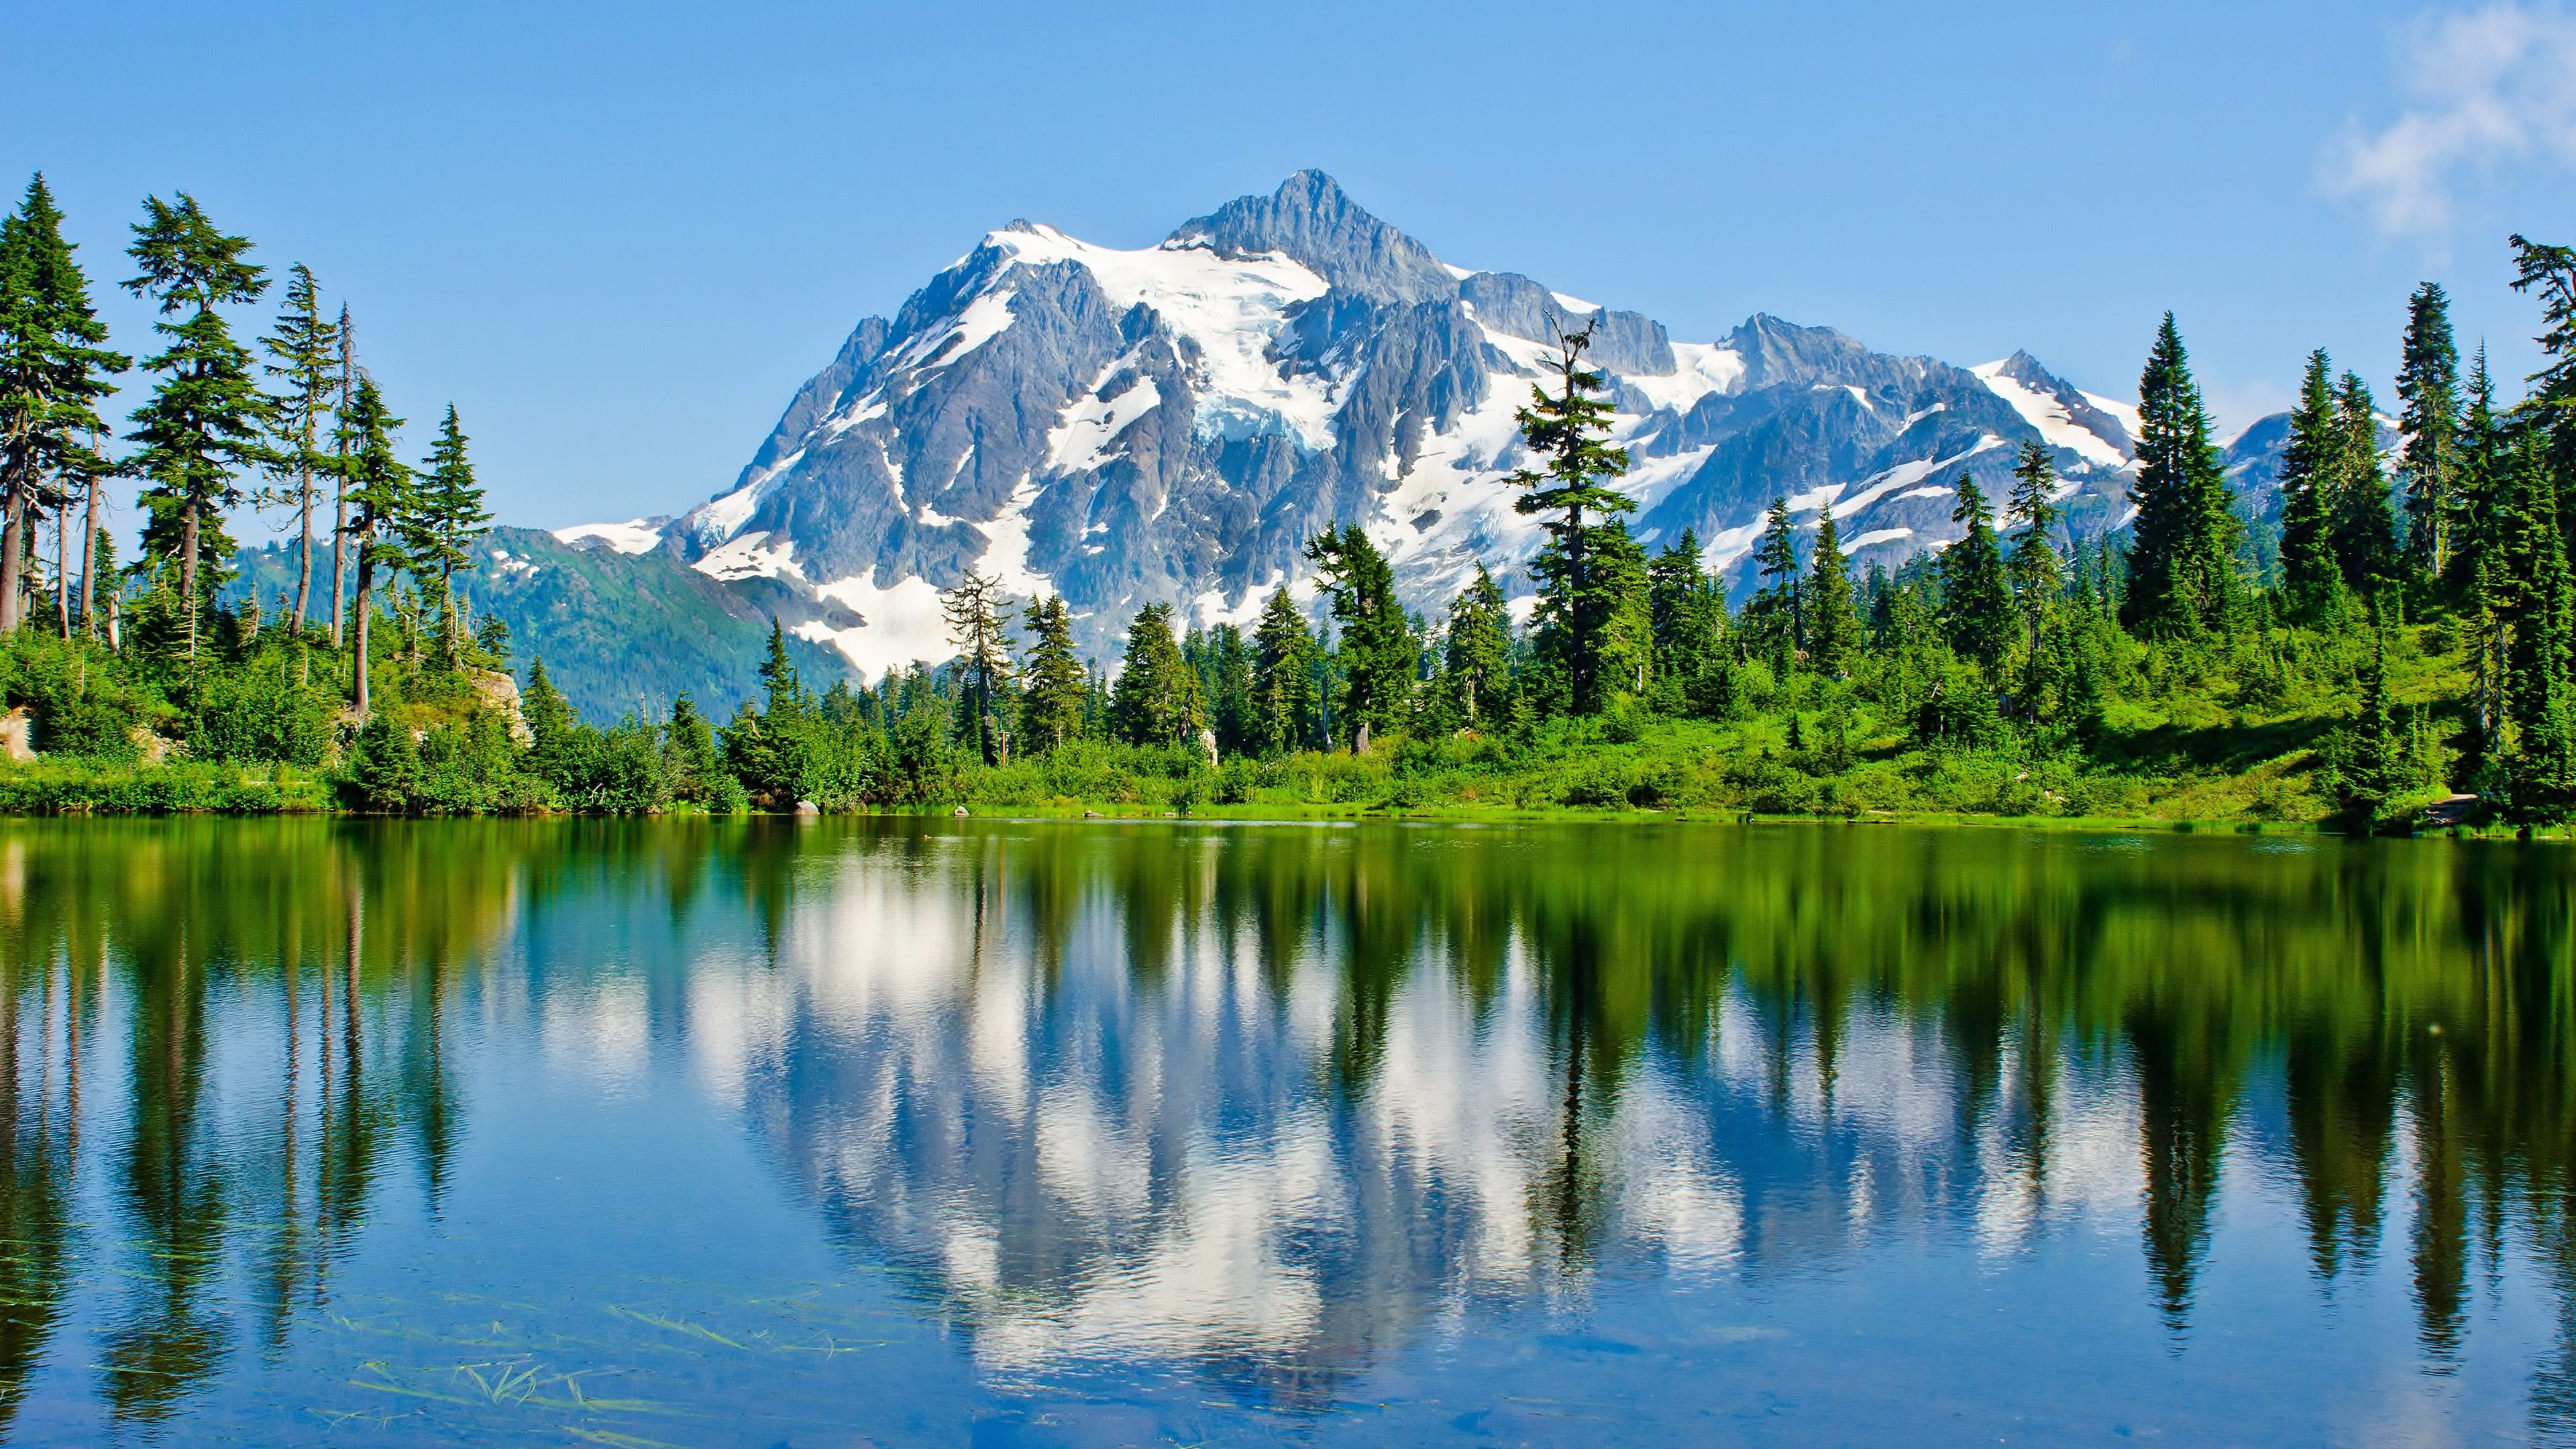 mount shuksan glaciated massif north cascades national park washington united states 4k wallpaper